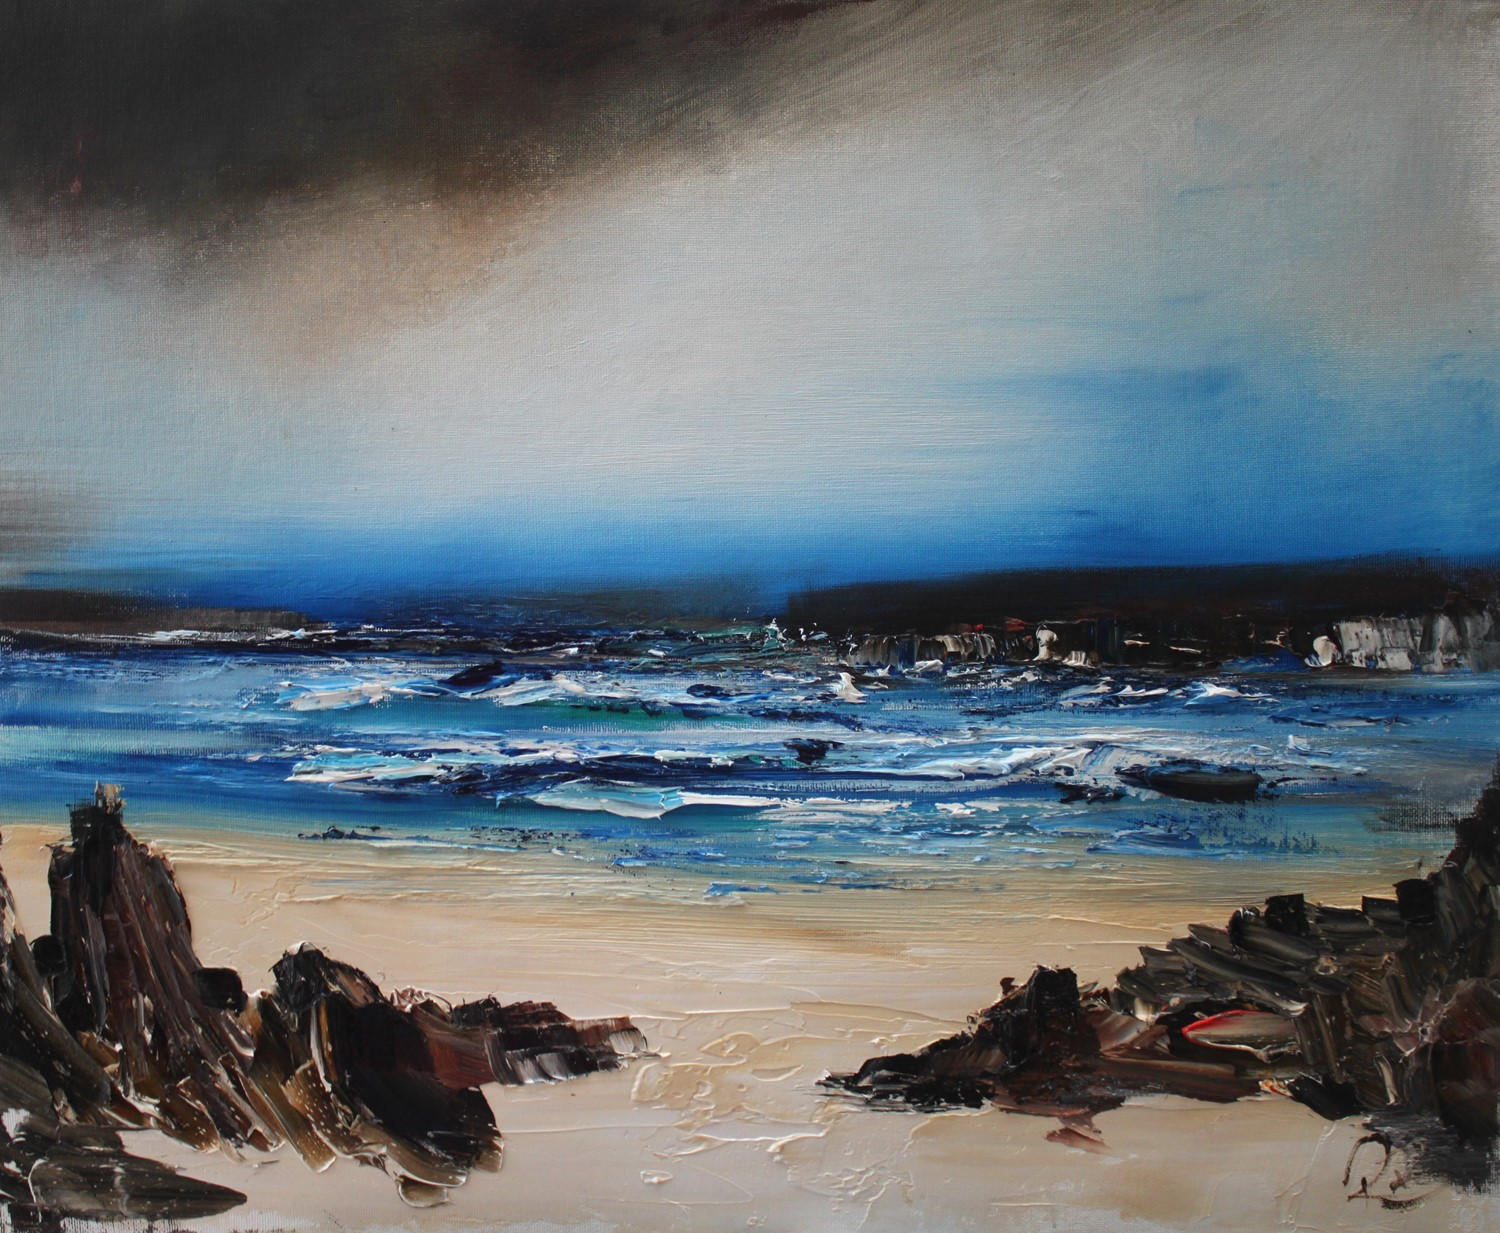 'Turning Tides' by artist Rosanne Barr